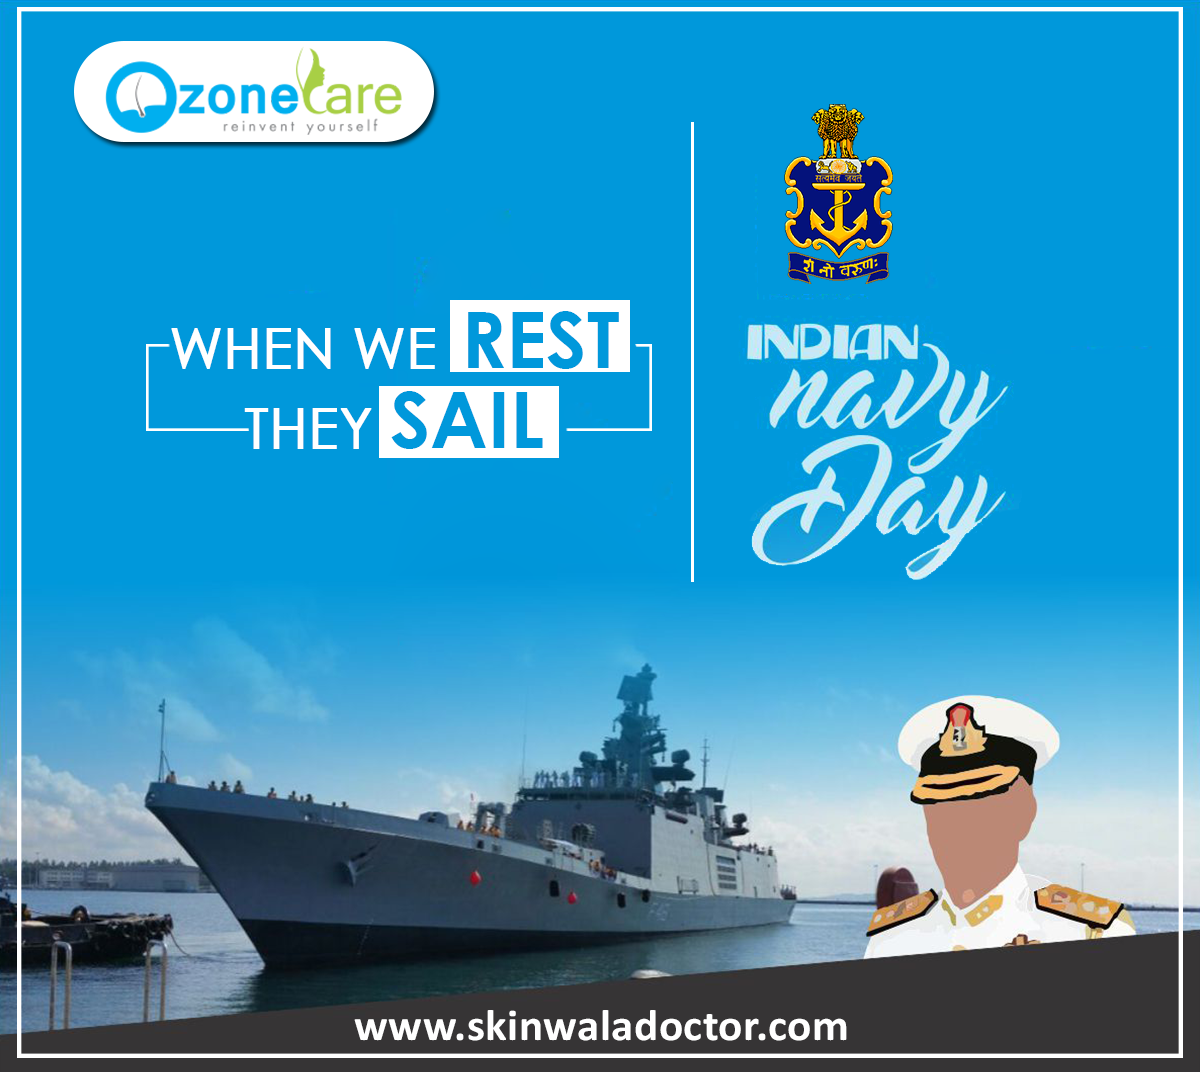 On The Occasion Of Indian Navy Day Let Us Thank Indian Navy For Their Dedication And Protection Let Us Take I Scalp Problems Laser Resurfacing Indian Navy Day